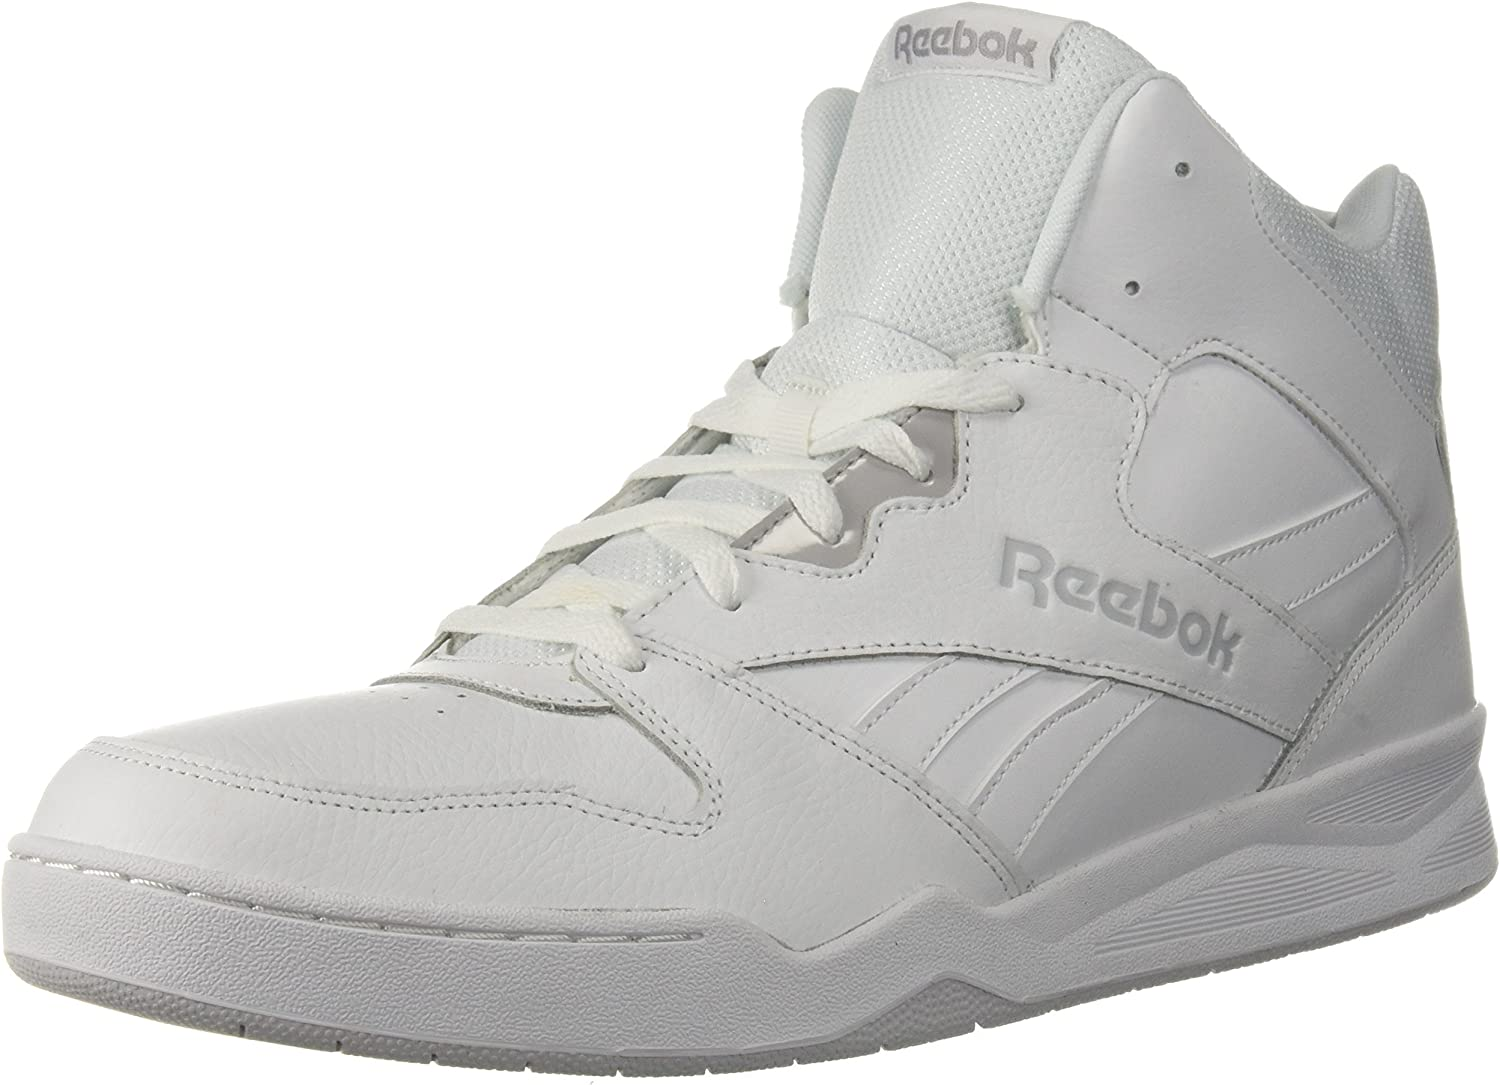 Retro Sneakers, Vintage Tennis Shoes Reebok Mens Royal Bb4500 Hi2 Sneaker $19.19 AT vintagedancer.com